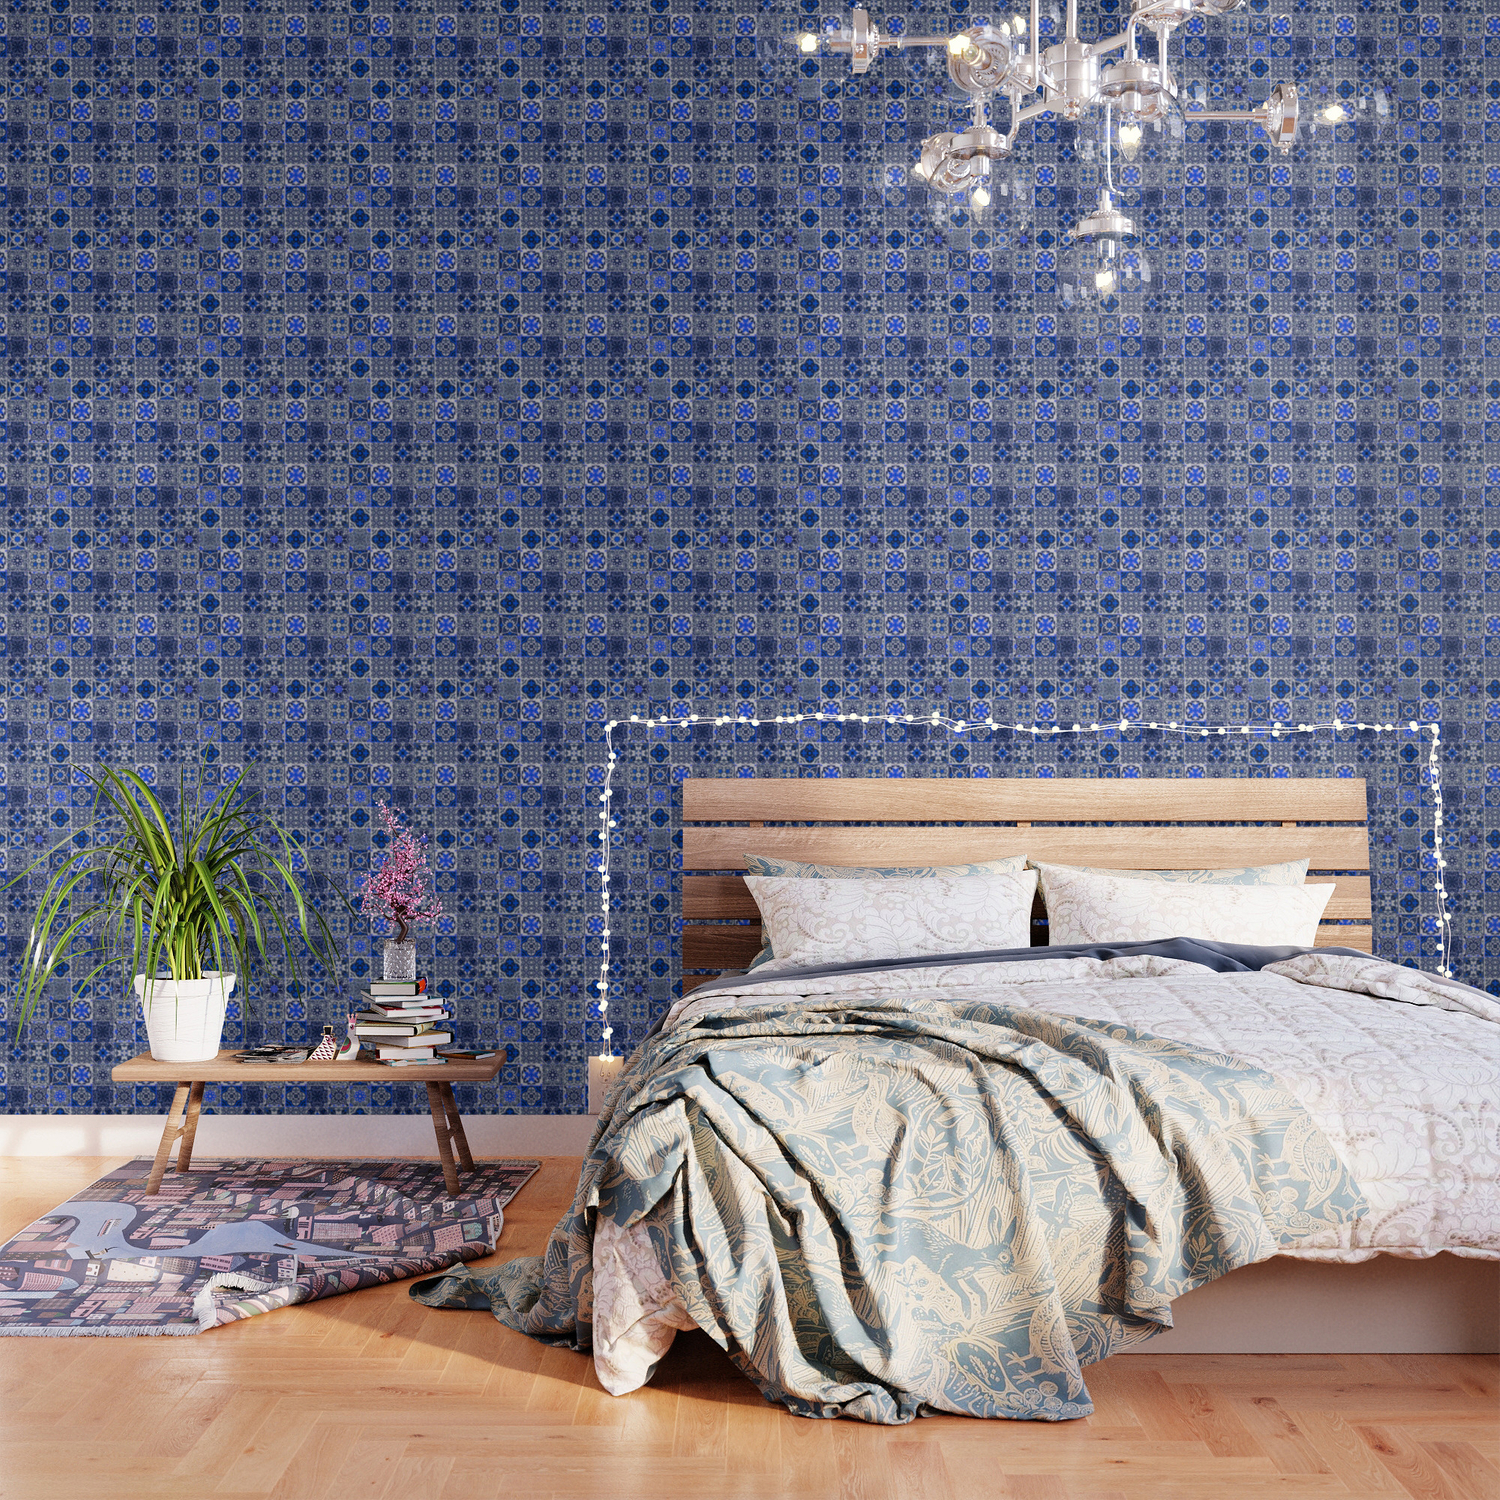 A34 Blue Traditional Floral Moroccan Tiles Wallpaper By